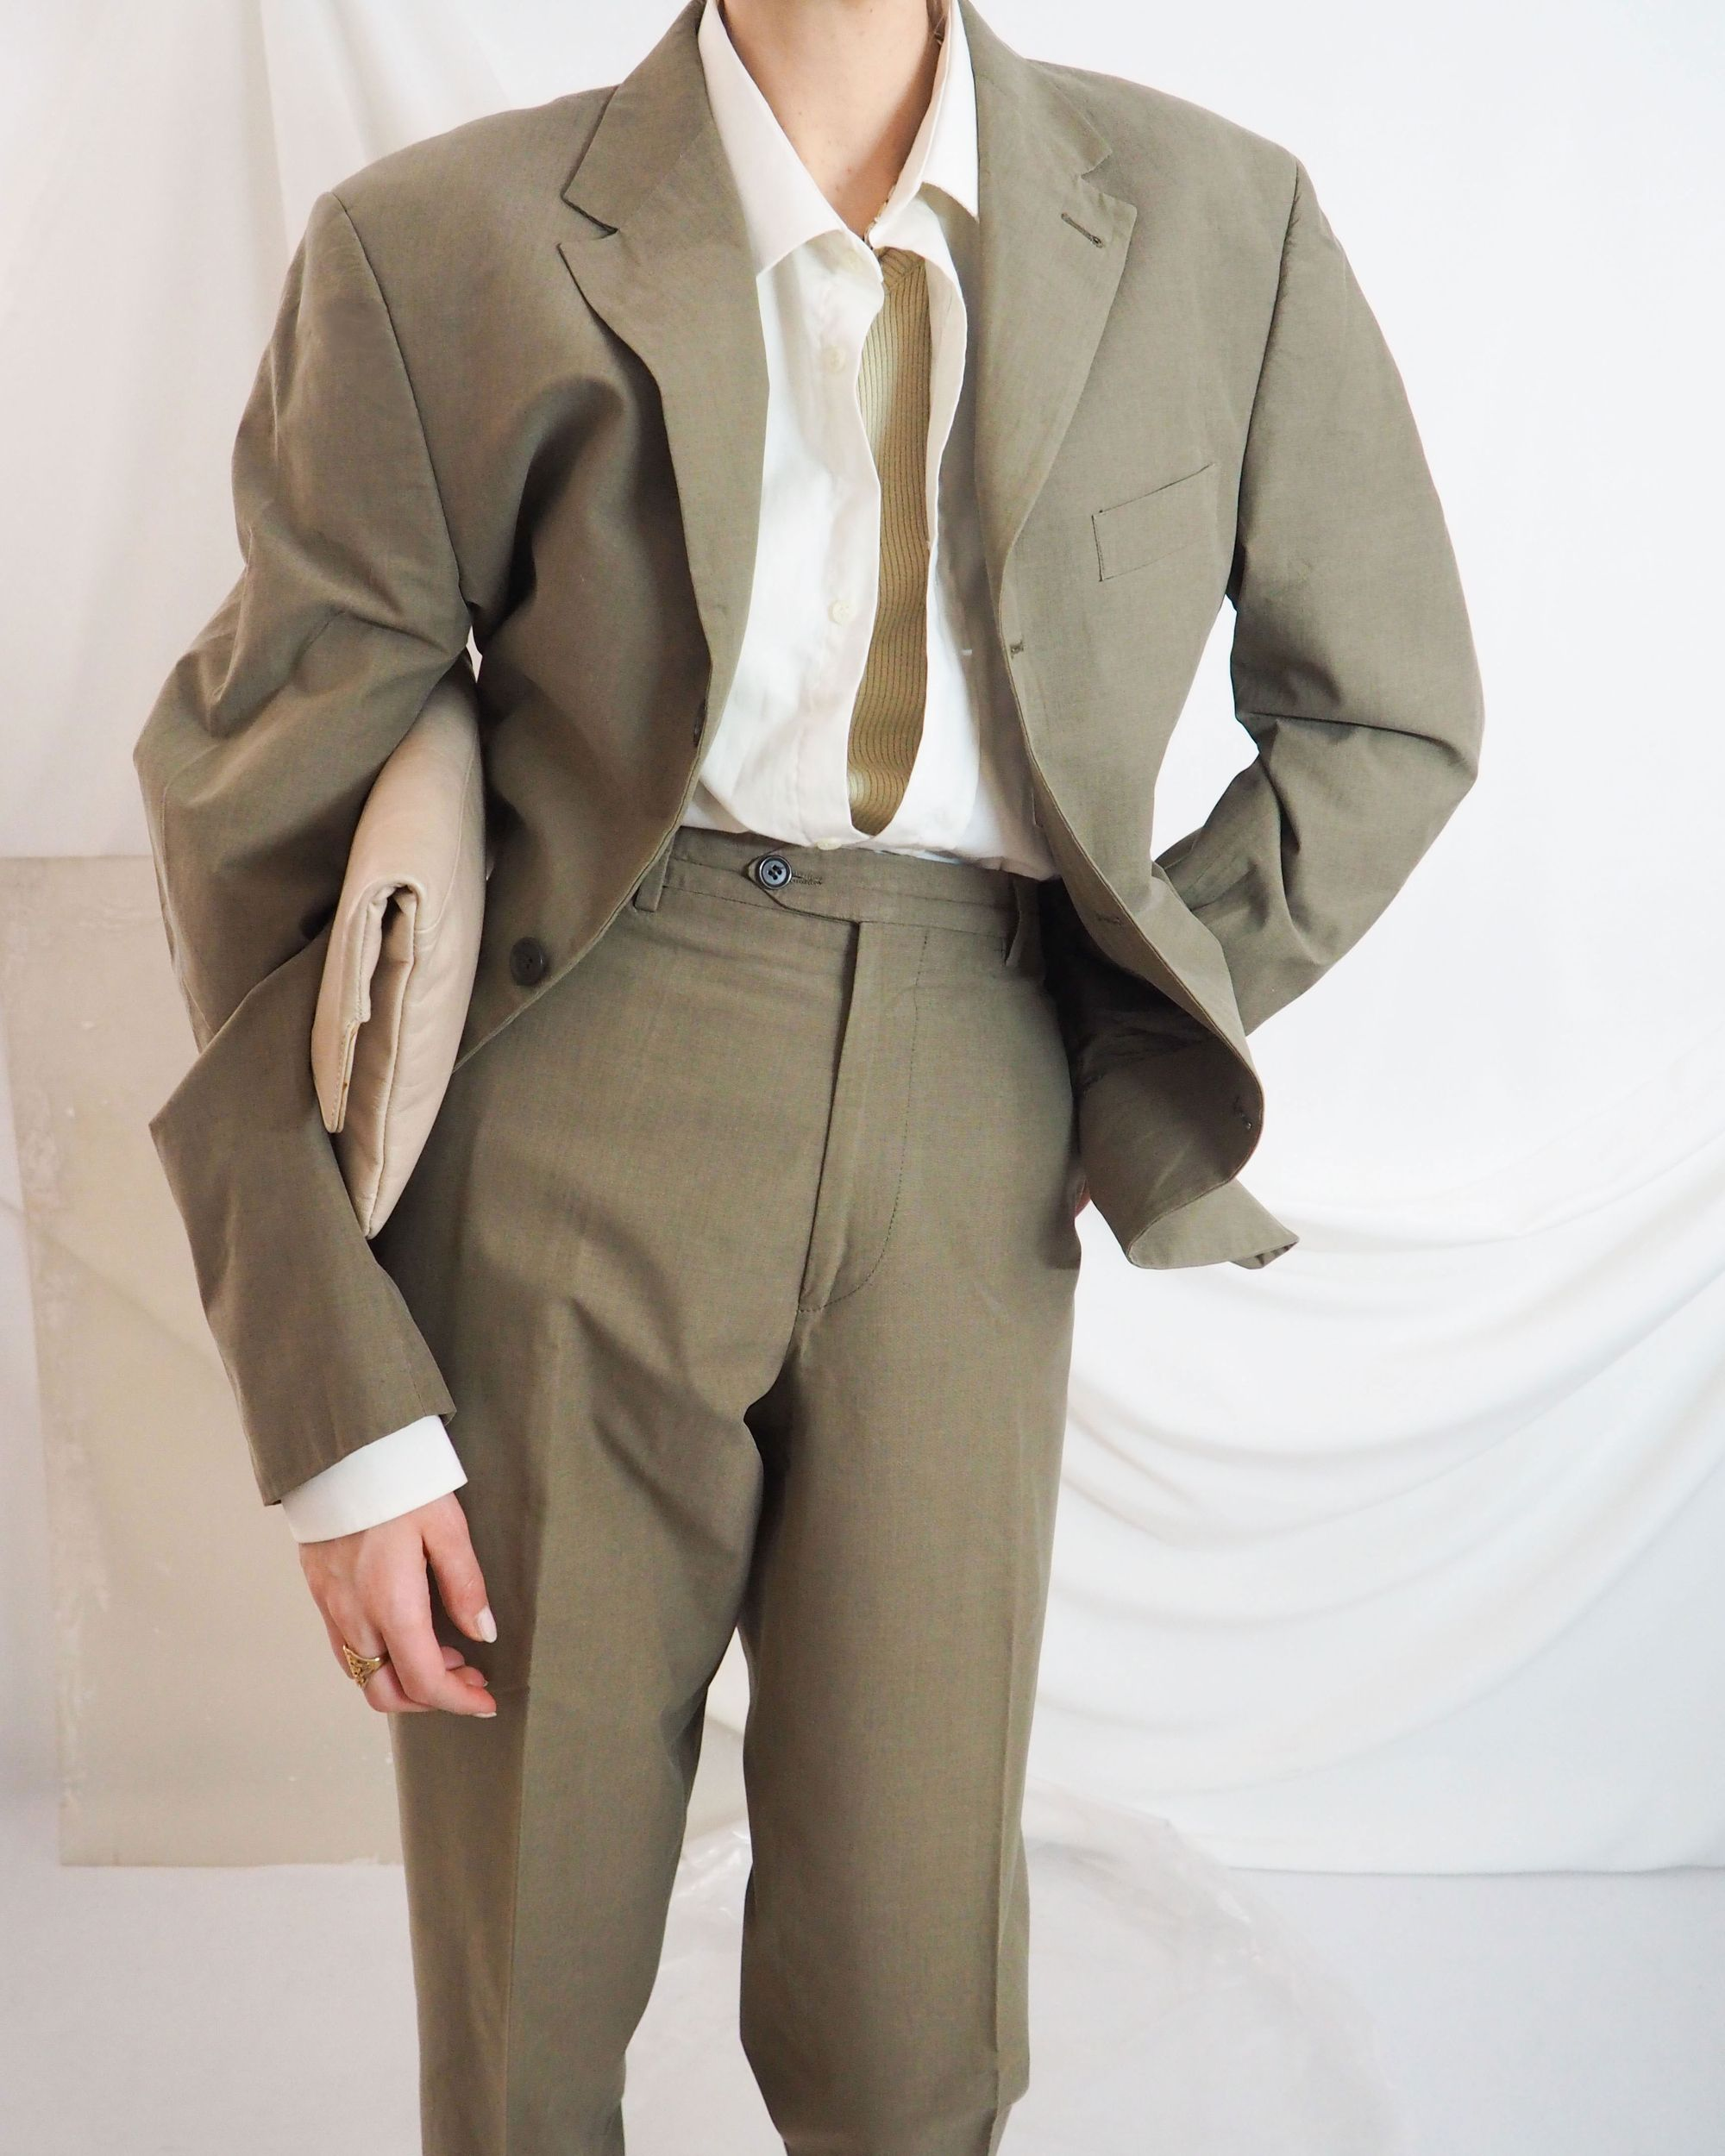 Vintage Pant Suit In Olive Green With Cream Shirt And Leather Clutch Untitled 1991 In 2020 Vintage Pants Vintage Outfits Cream Shirt